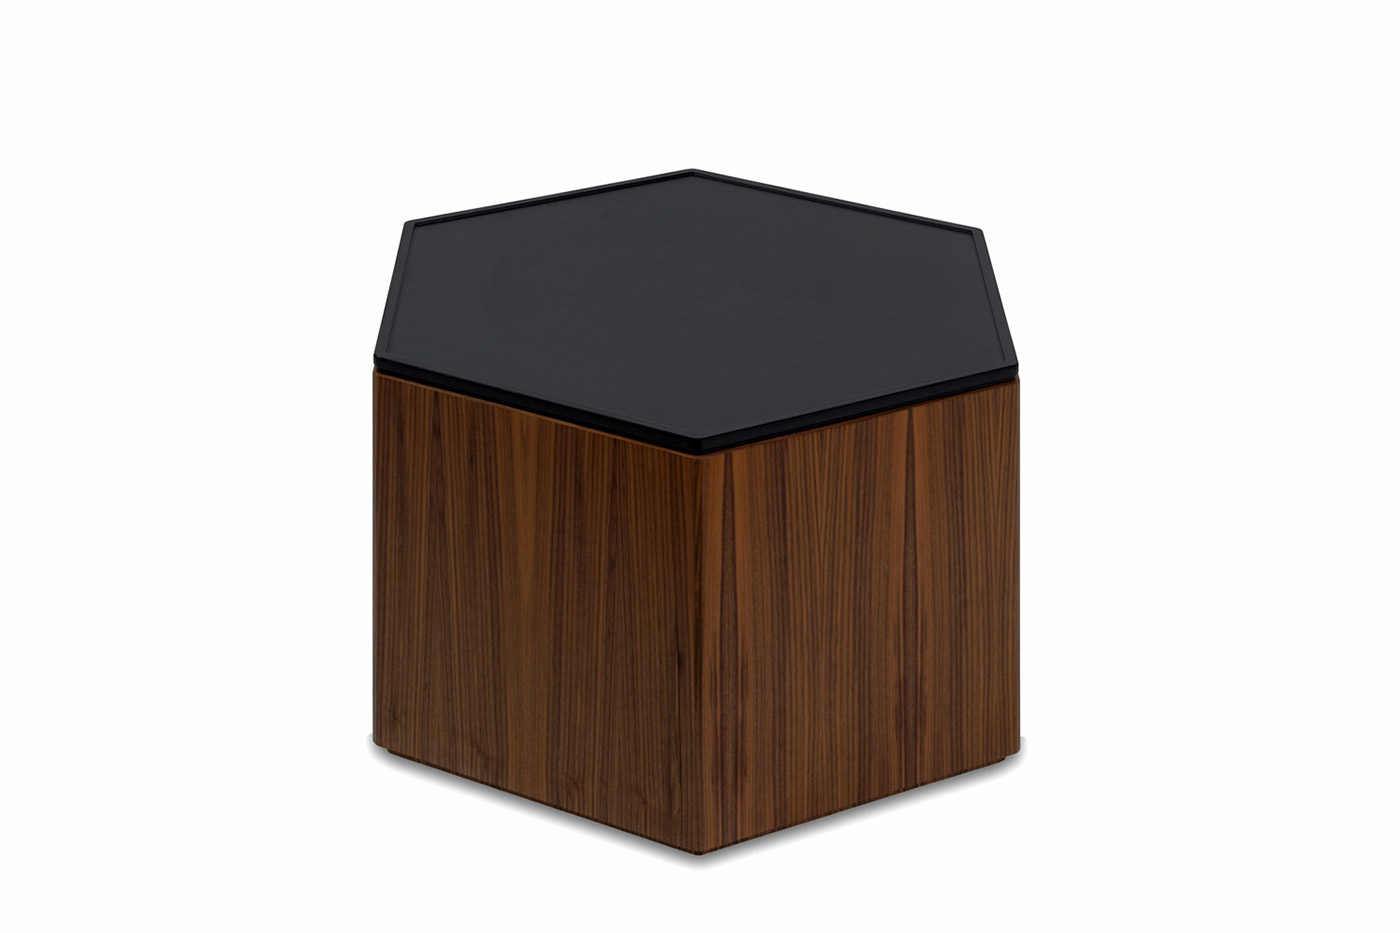 Polygon storage hexagon coffee table on behance polygon storage hexagon coffee table quartersawn american black walnut base with black top geotapseo Images